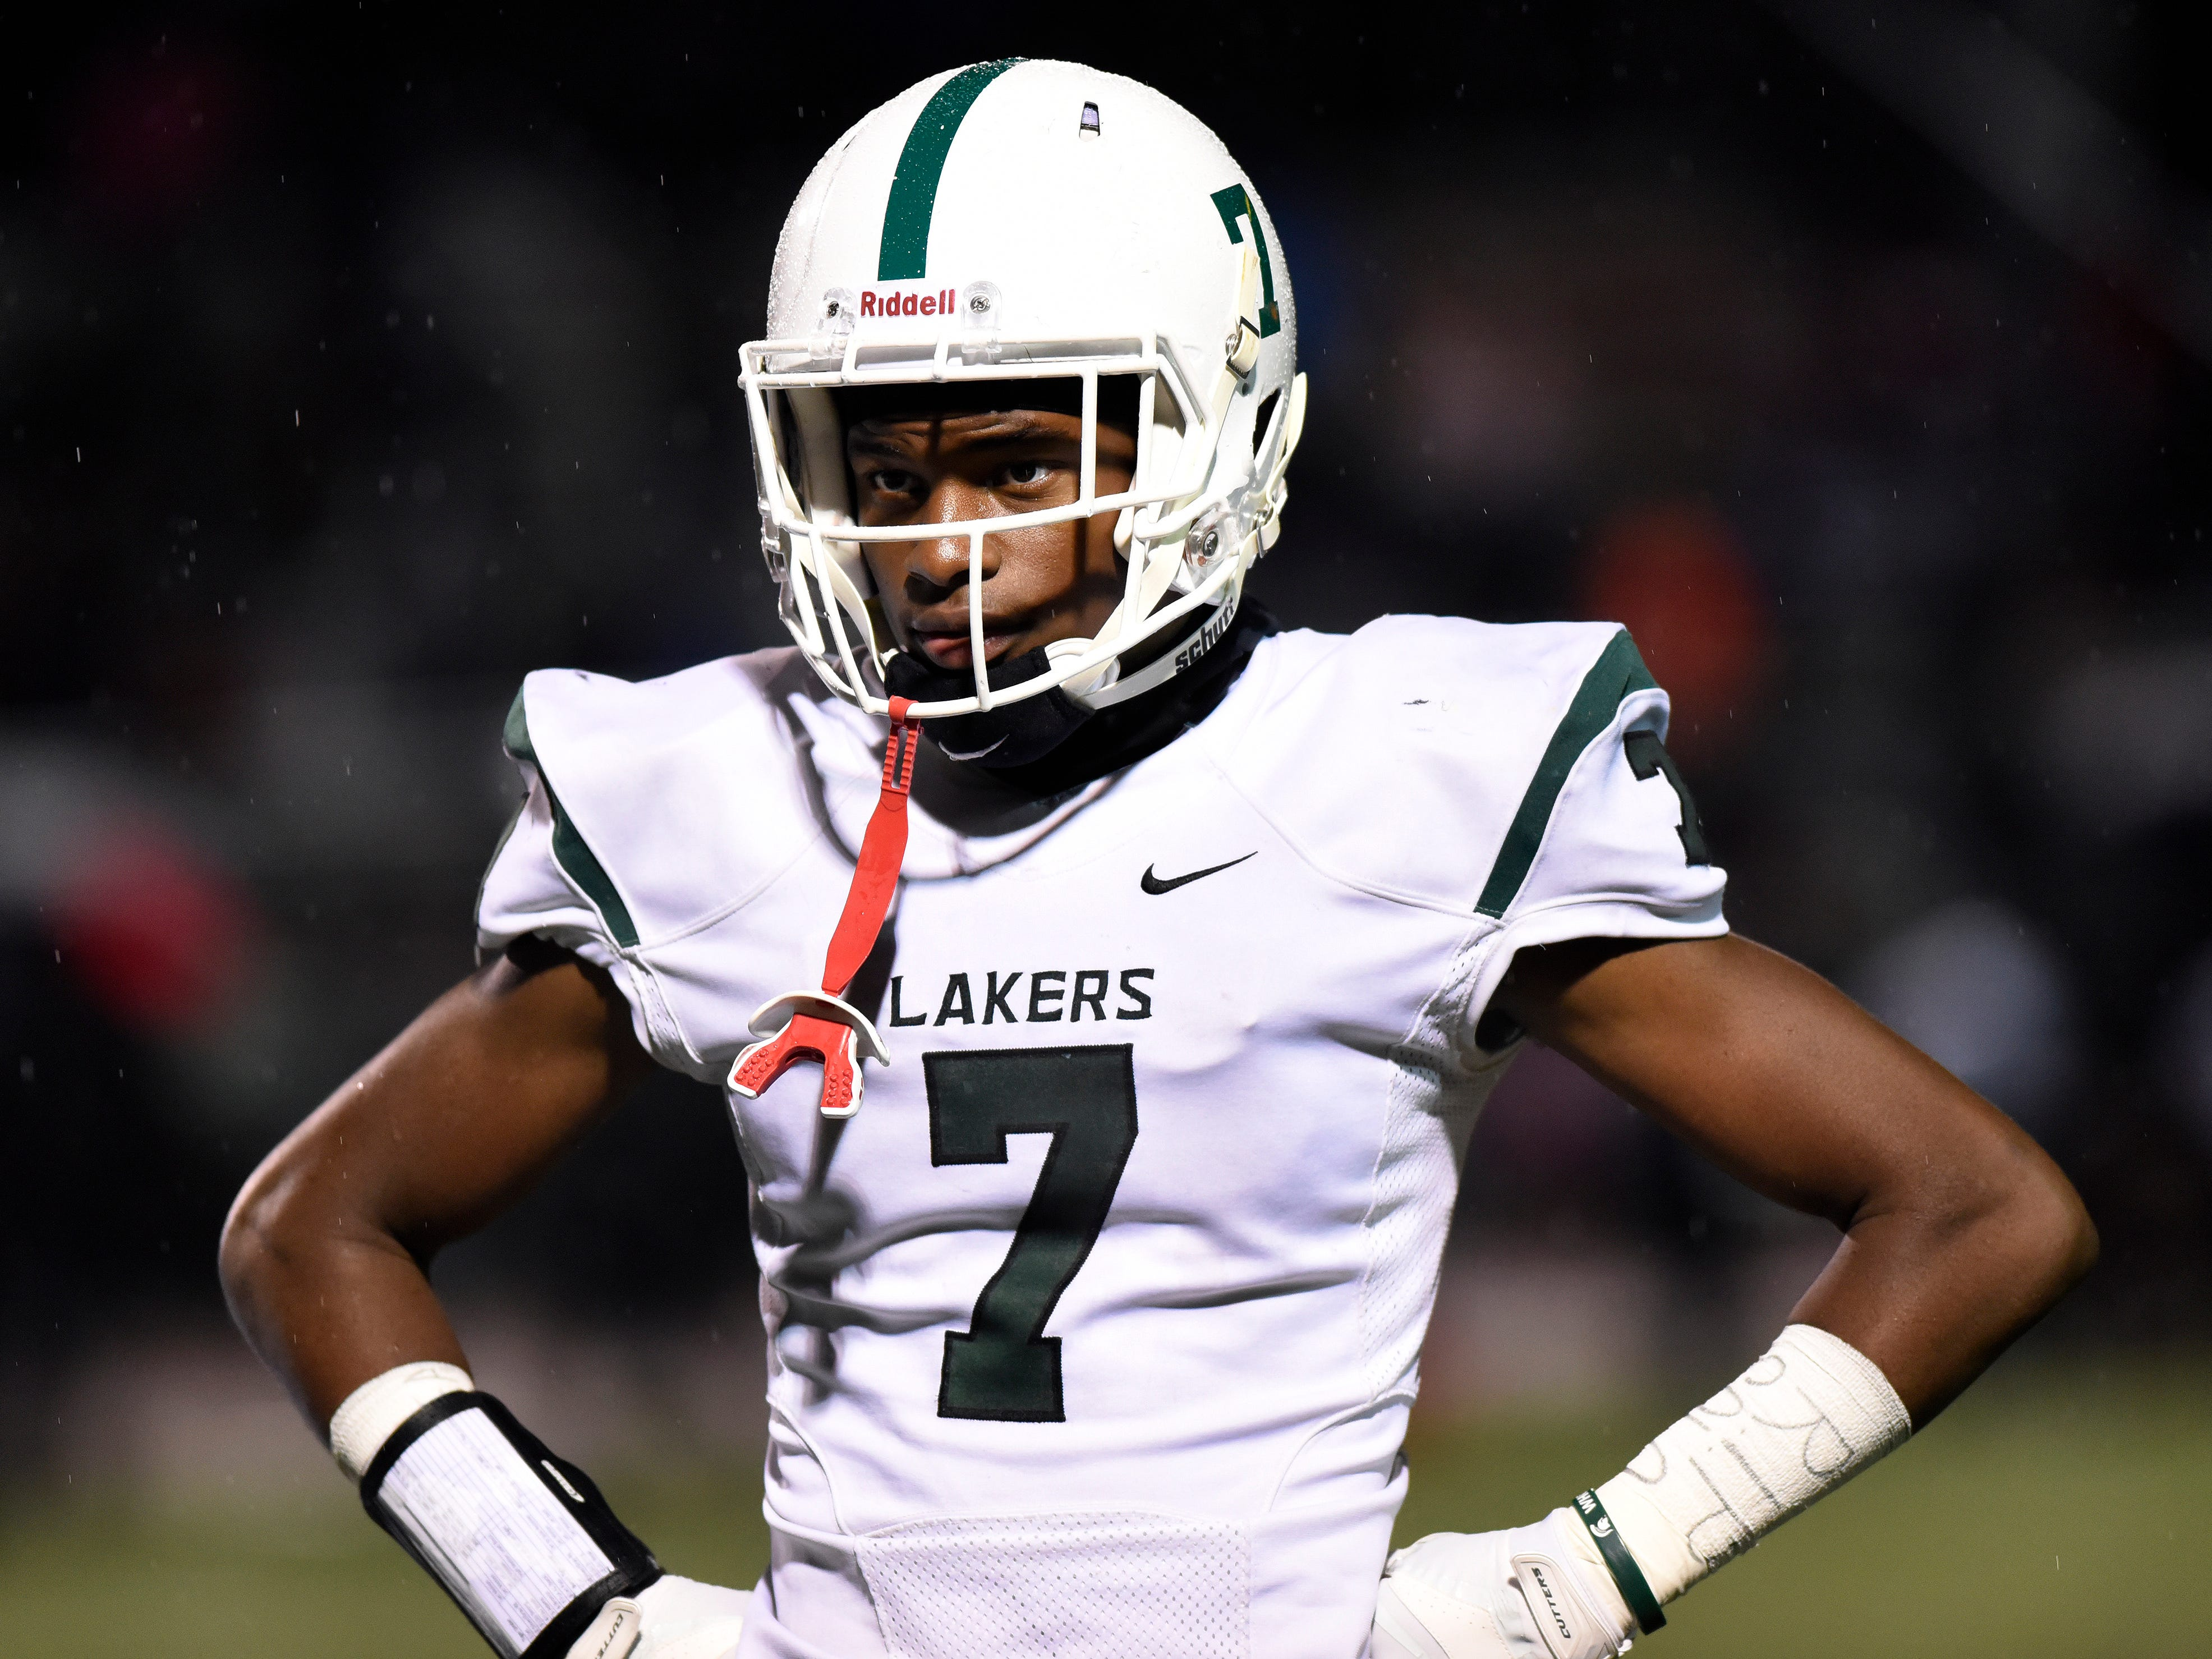 """10. Tre Mosley, West Bloomfield (Michigan State, early enroll) — WR/6-2/180: Mosley earned a spot on The News Dream Team. He was the big-play man for West Bloomfield, hauling in 45 passes for 1,000 yards and 10 touchdowns to help his team reach the regional championship game. """"Tre is one of the best receivers in the nation,"""" coach Ron Bellamy said. """"Tre has an unbelievable work ethic and competitiveness and is one of the best I've seen around."""""""